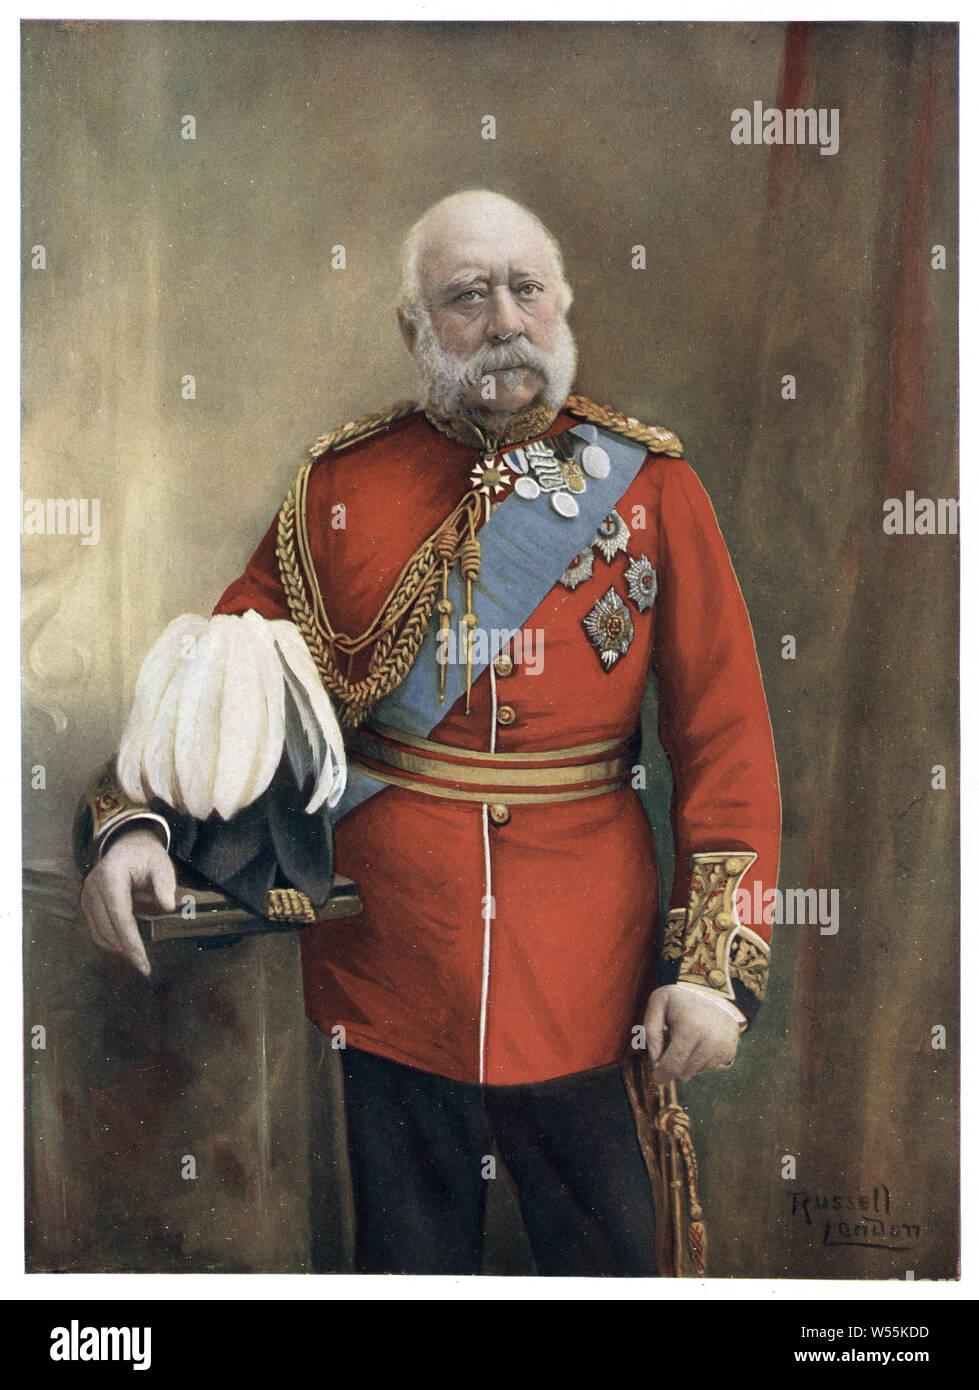 Prince George, Duke of Cambridge, (George William Frederick Charles; 26 March 1819 – 17 March 1904) was a member of the British Royal Family, a male-line grandson of King George III, cousin of Queen Victoria Stock Photo